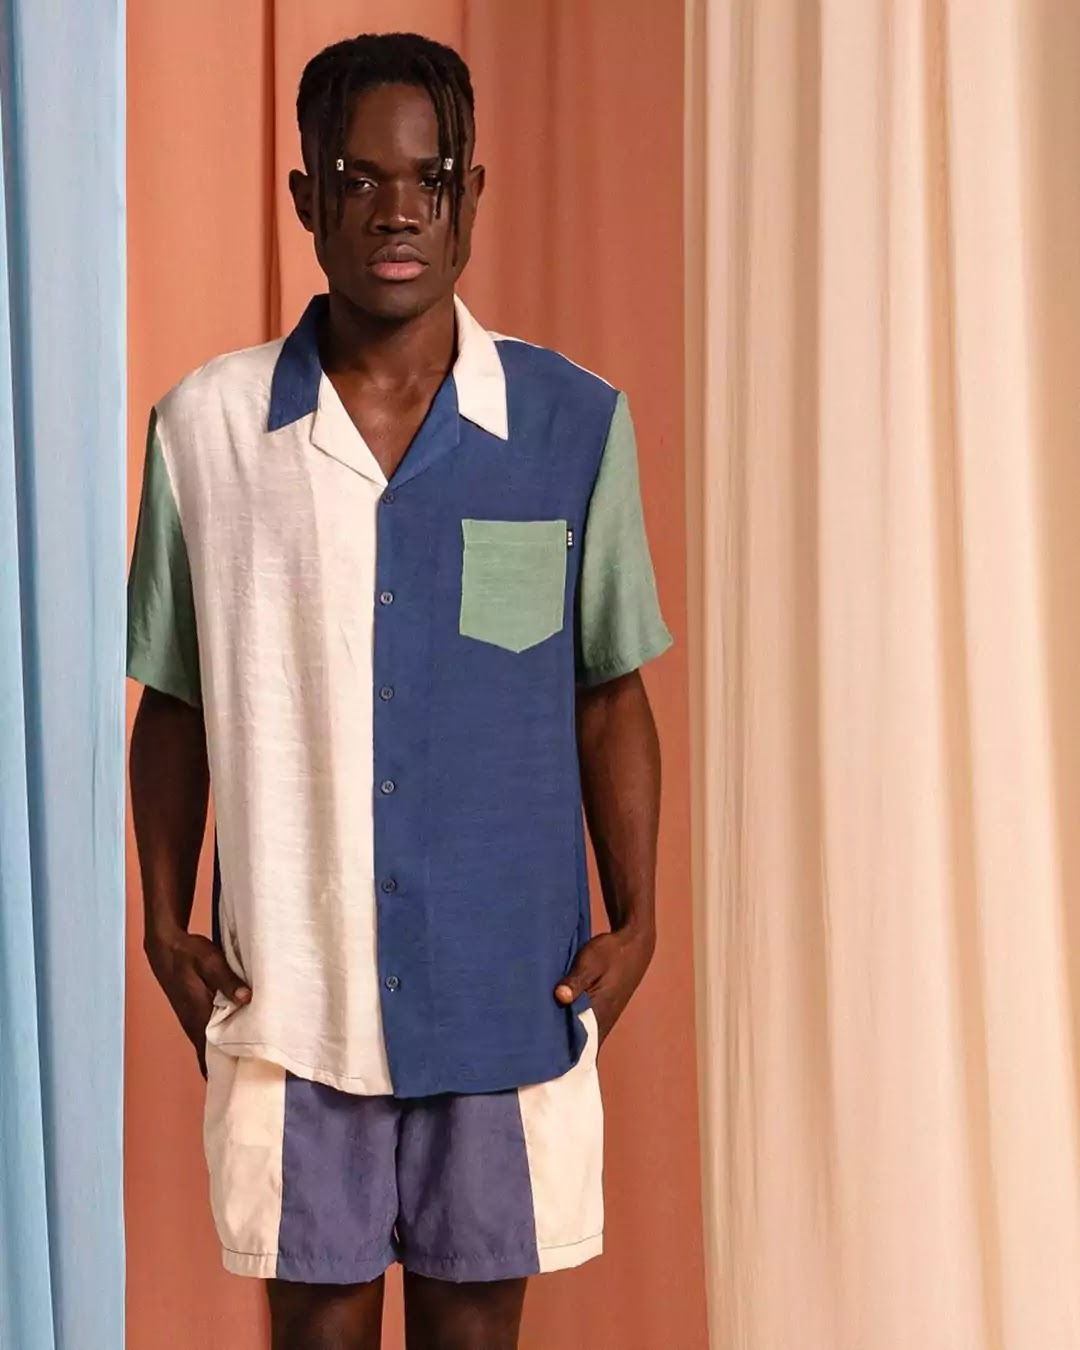 Patchwork - Men's Fashion Trends 2021